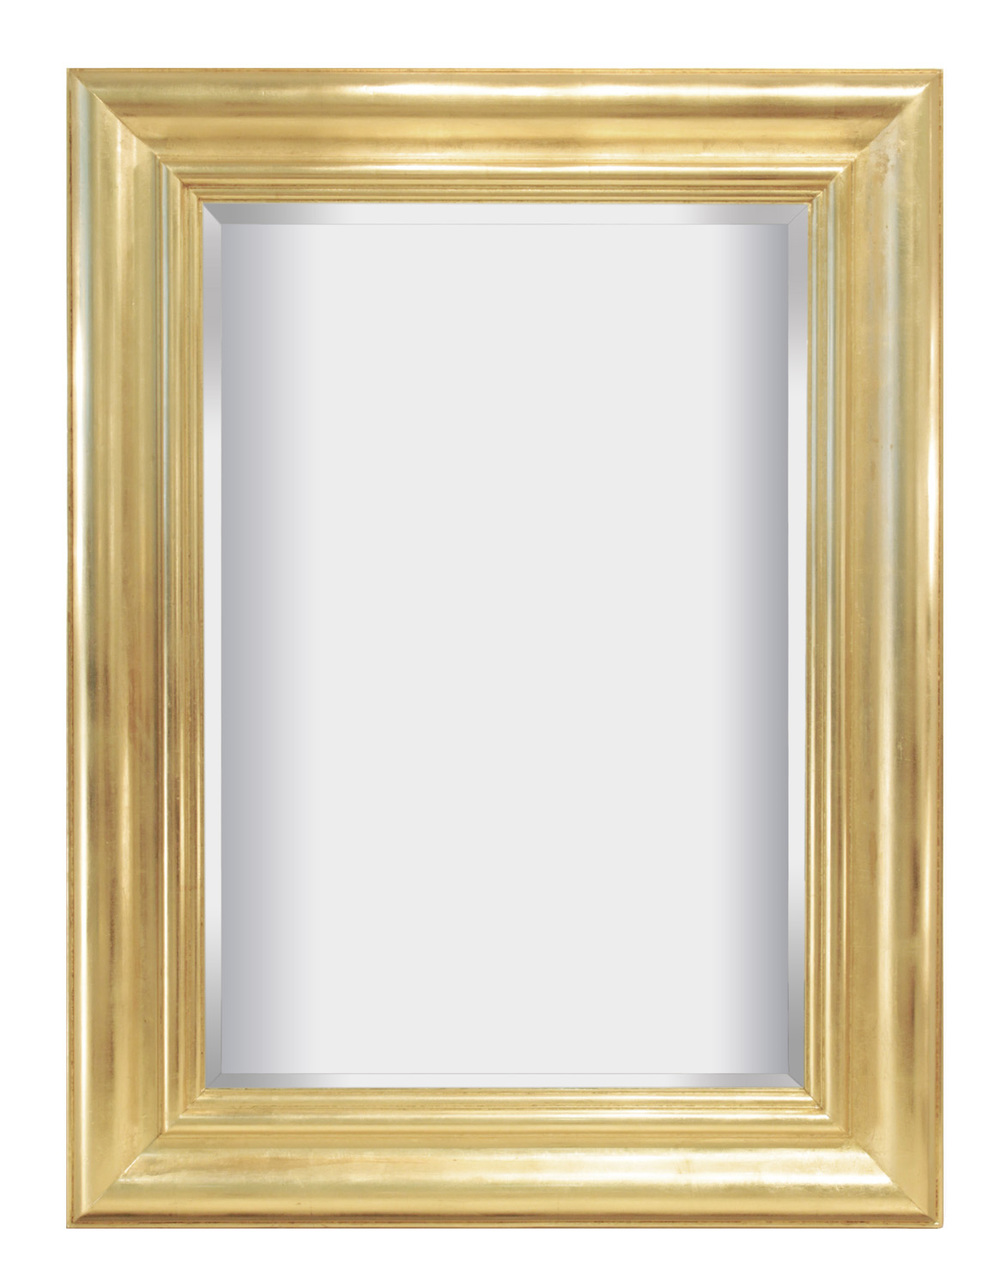 Springer 75 rect gold leaf mirror73 hires.jpg